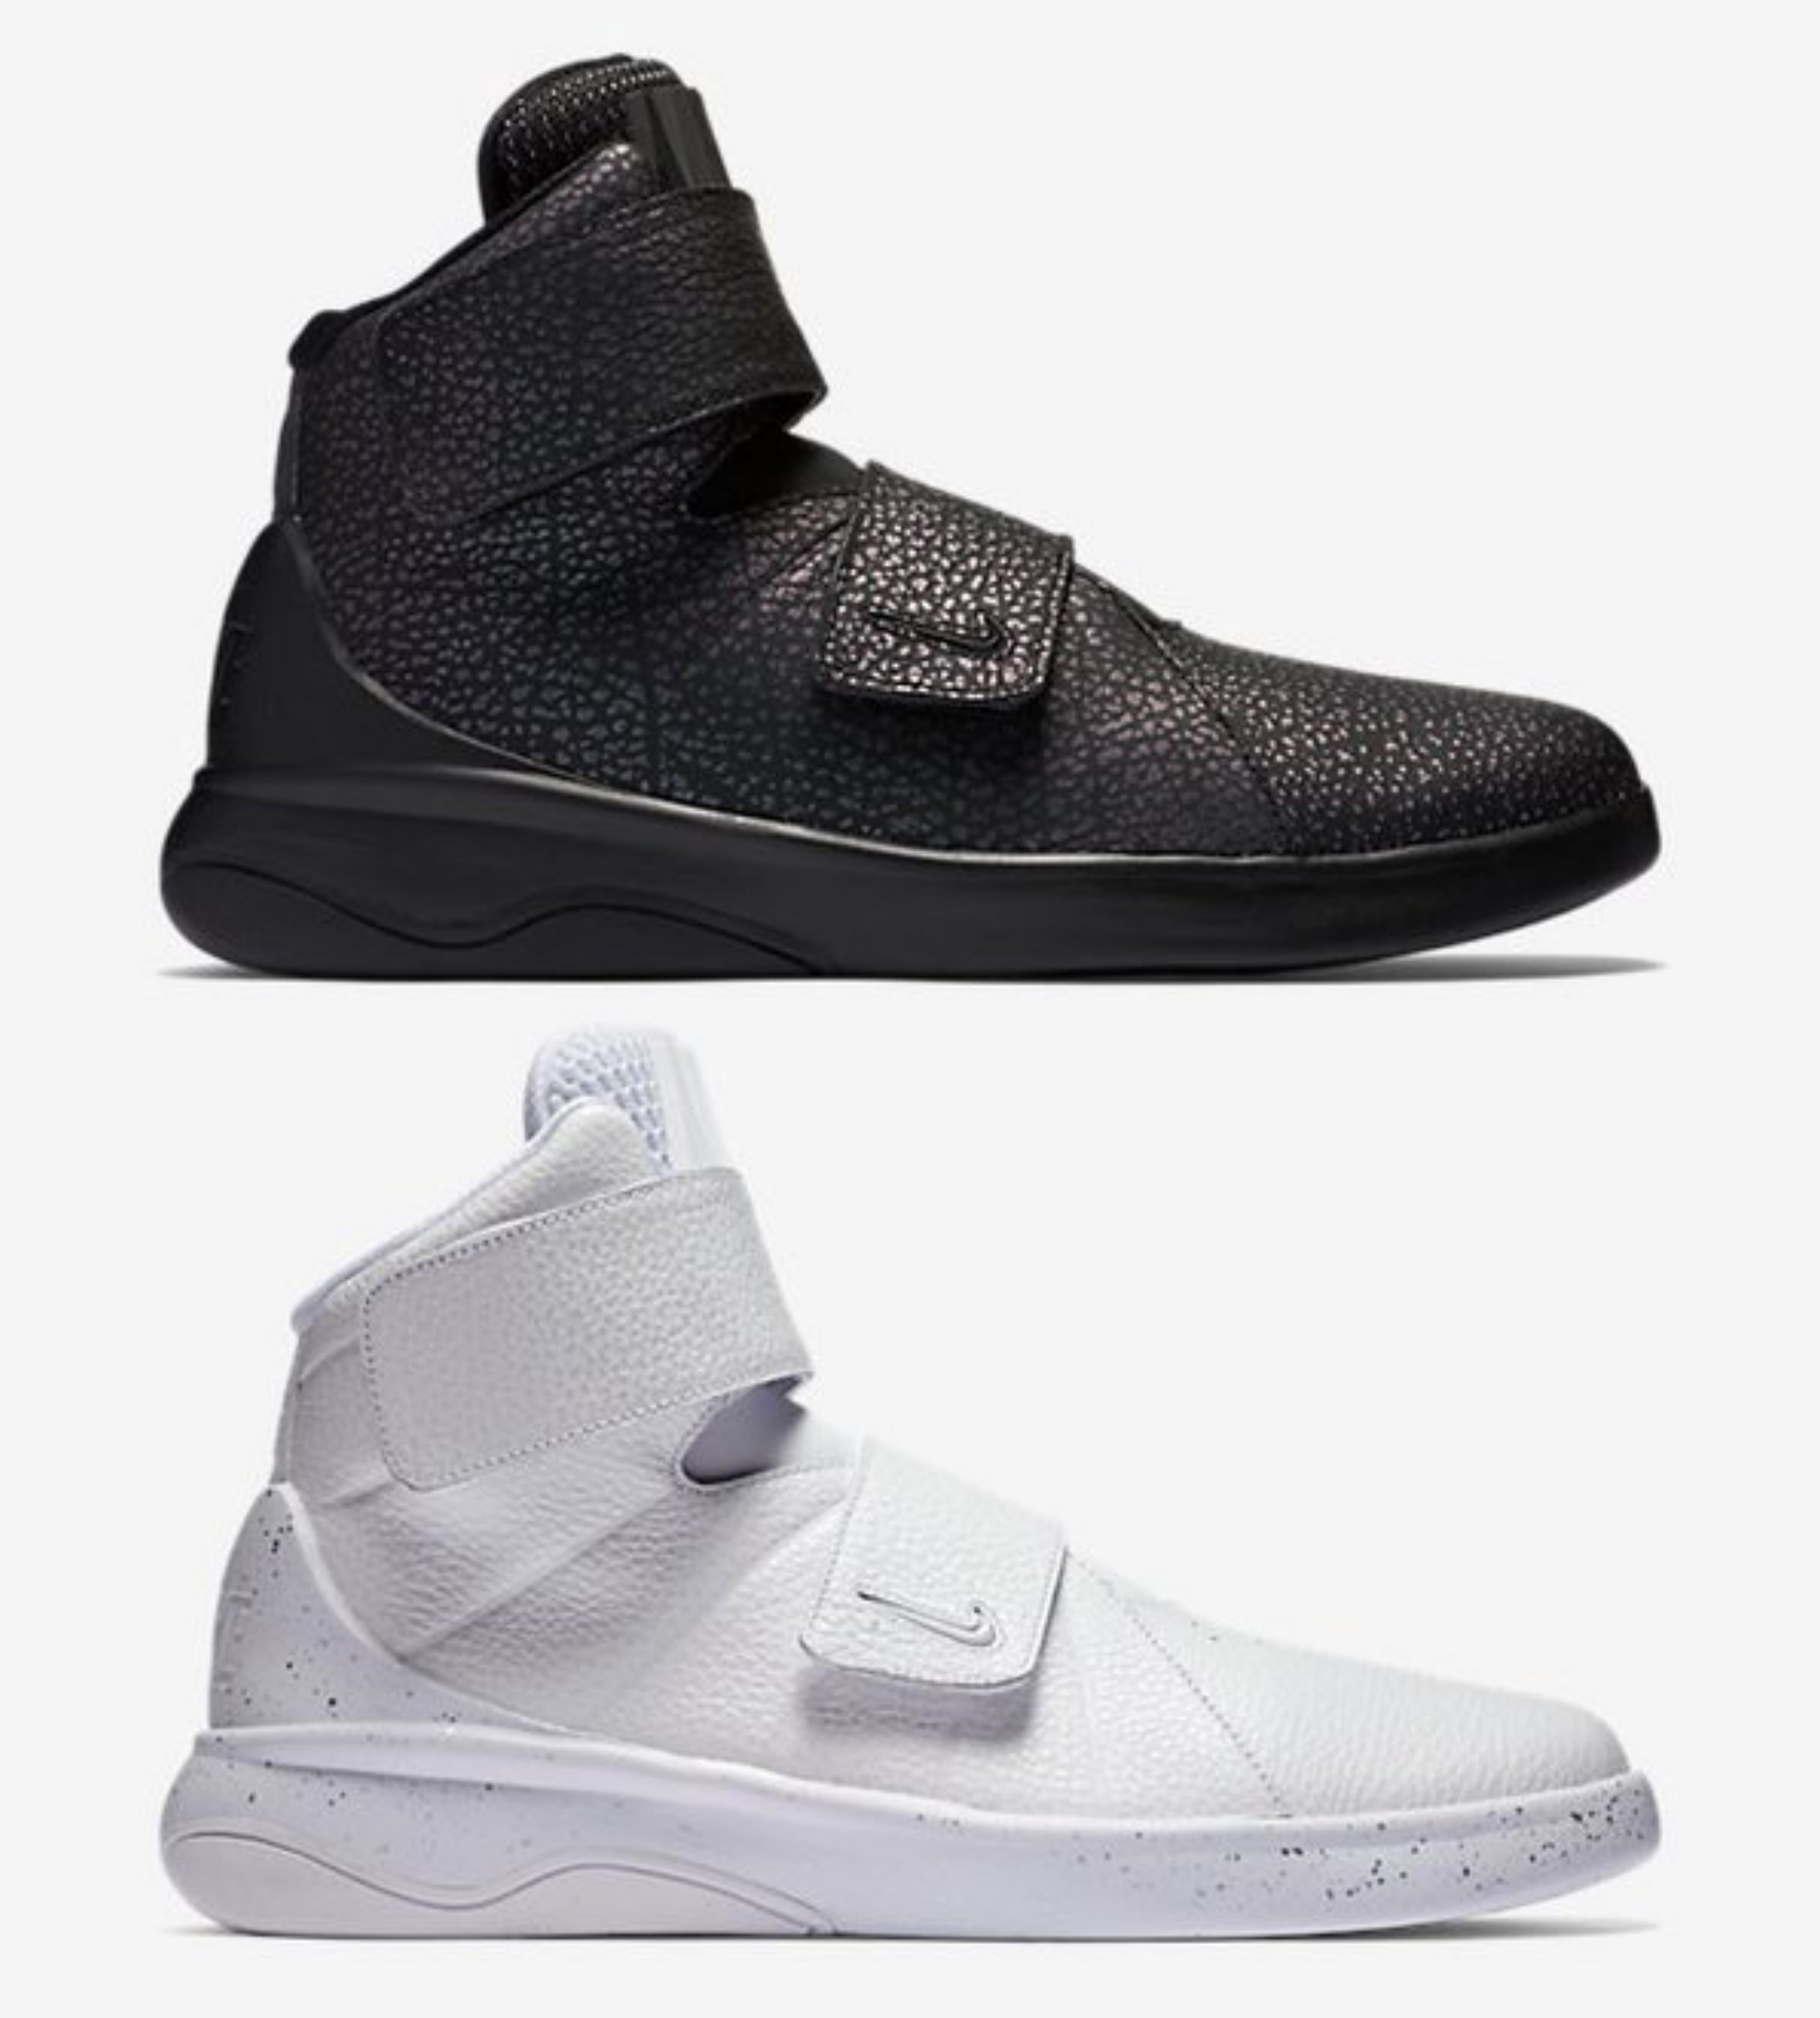 Nike Marxman 'All Star' Black and white